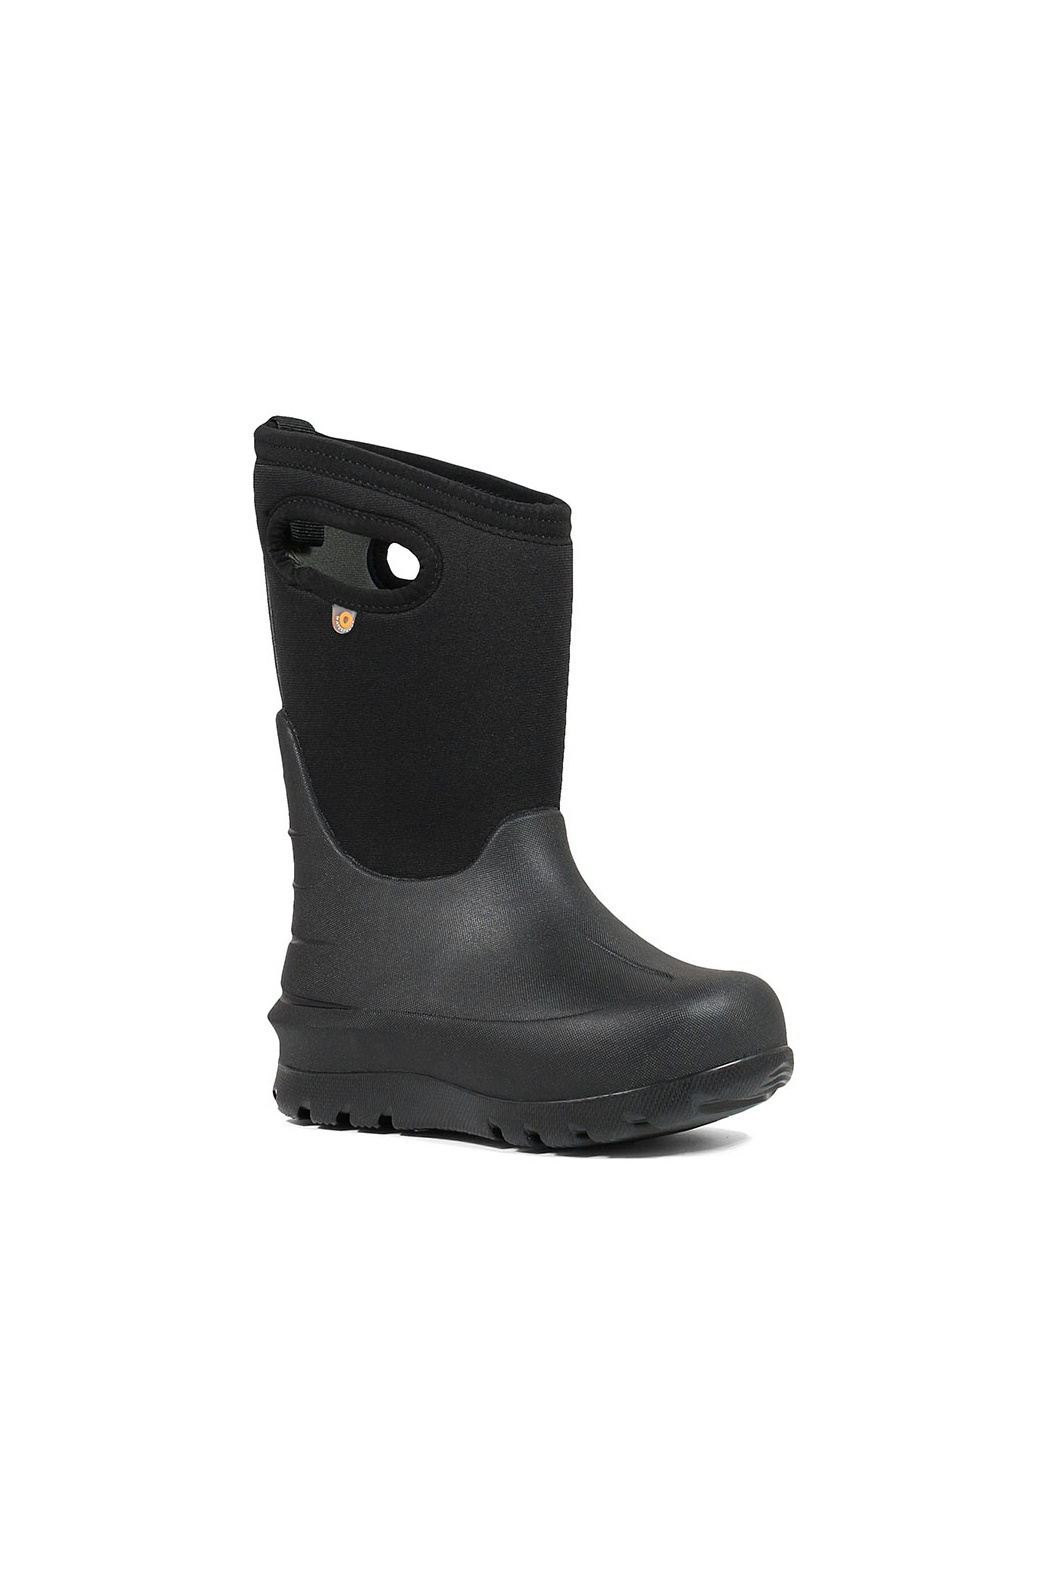 BOGS Neo-Classic Solid Kids Insulated Boots - Front Full Image